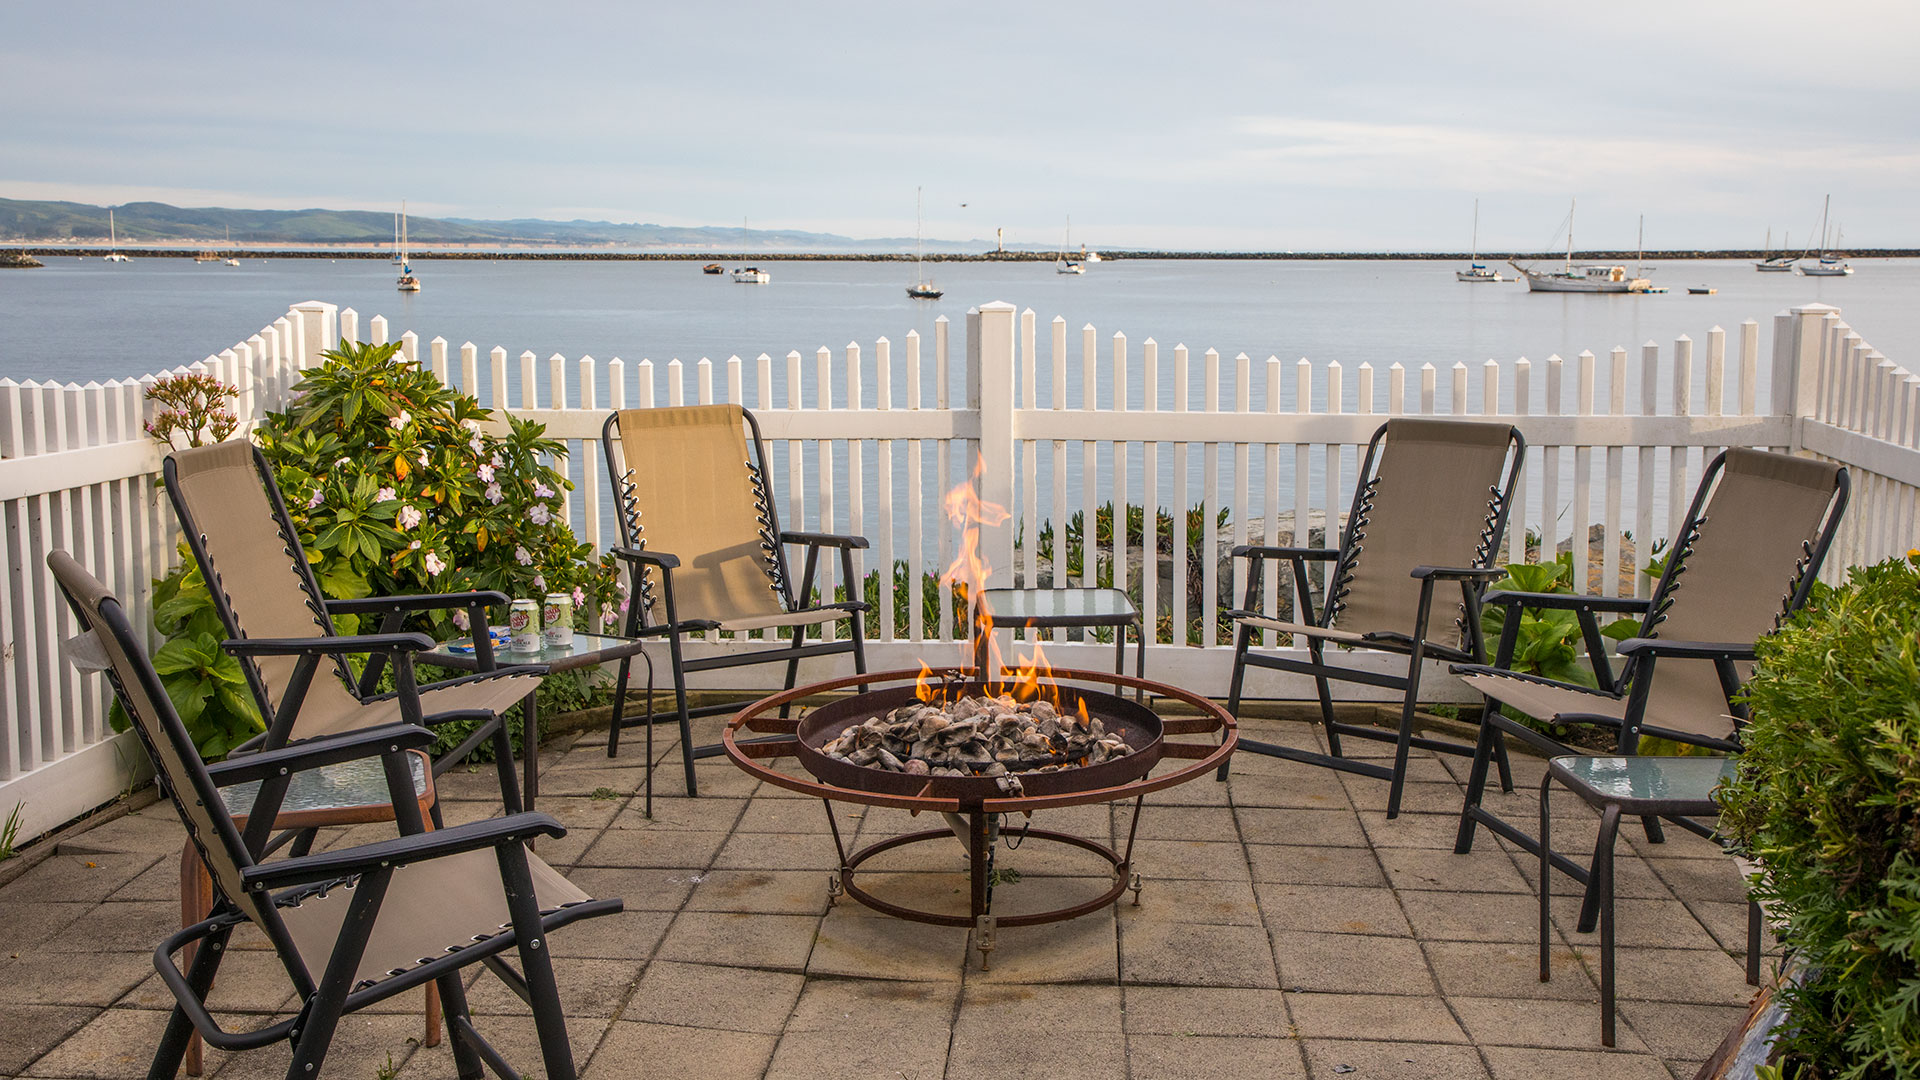 Inn at Mavericks Outdoor Fire-Pit Overlooking The Bay